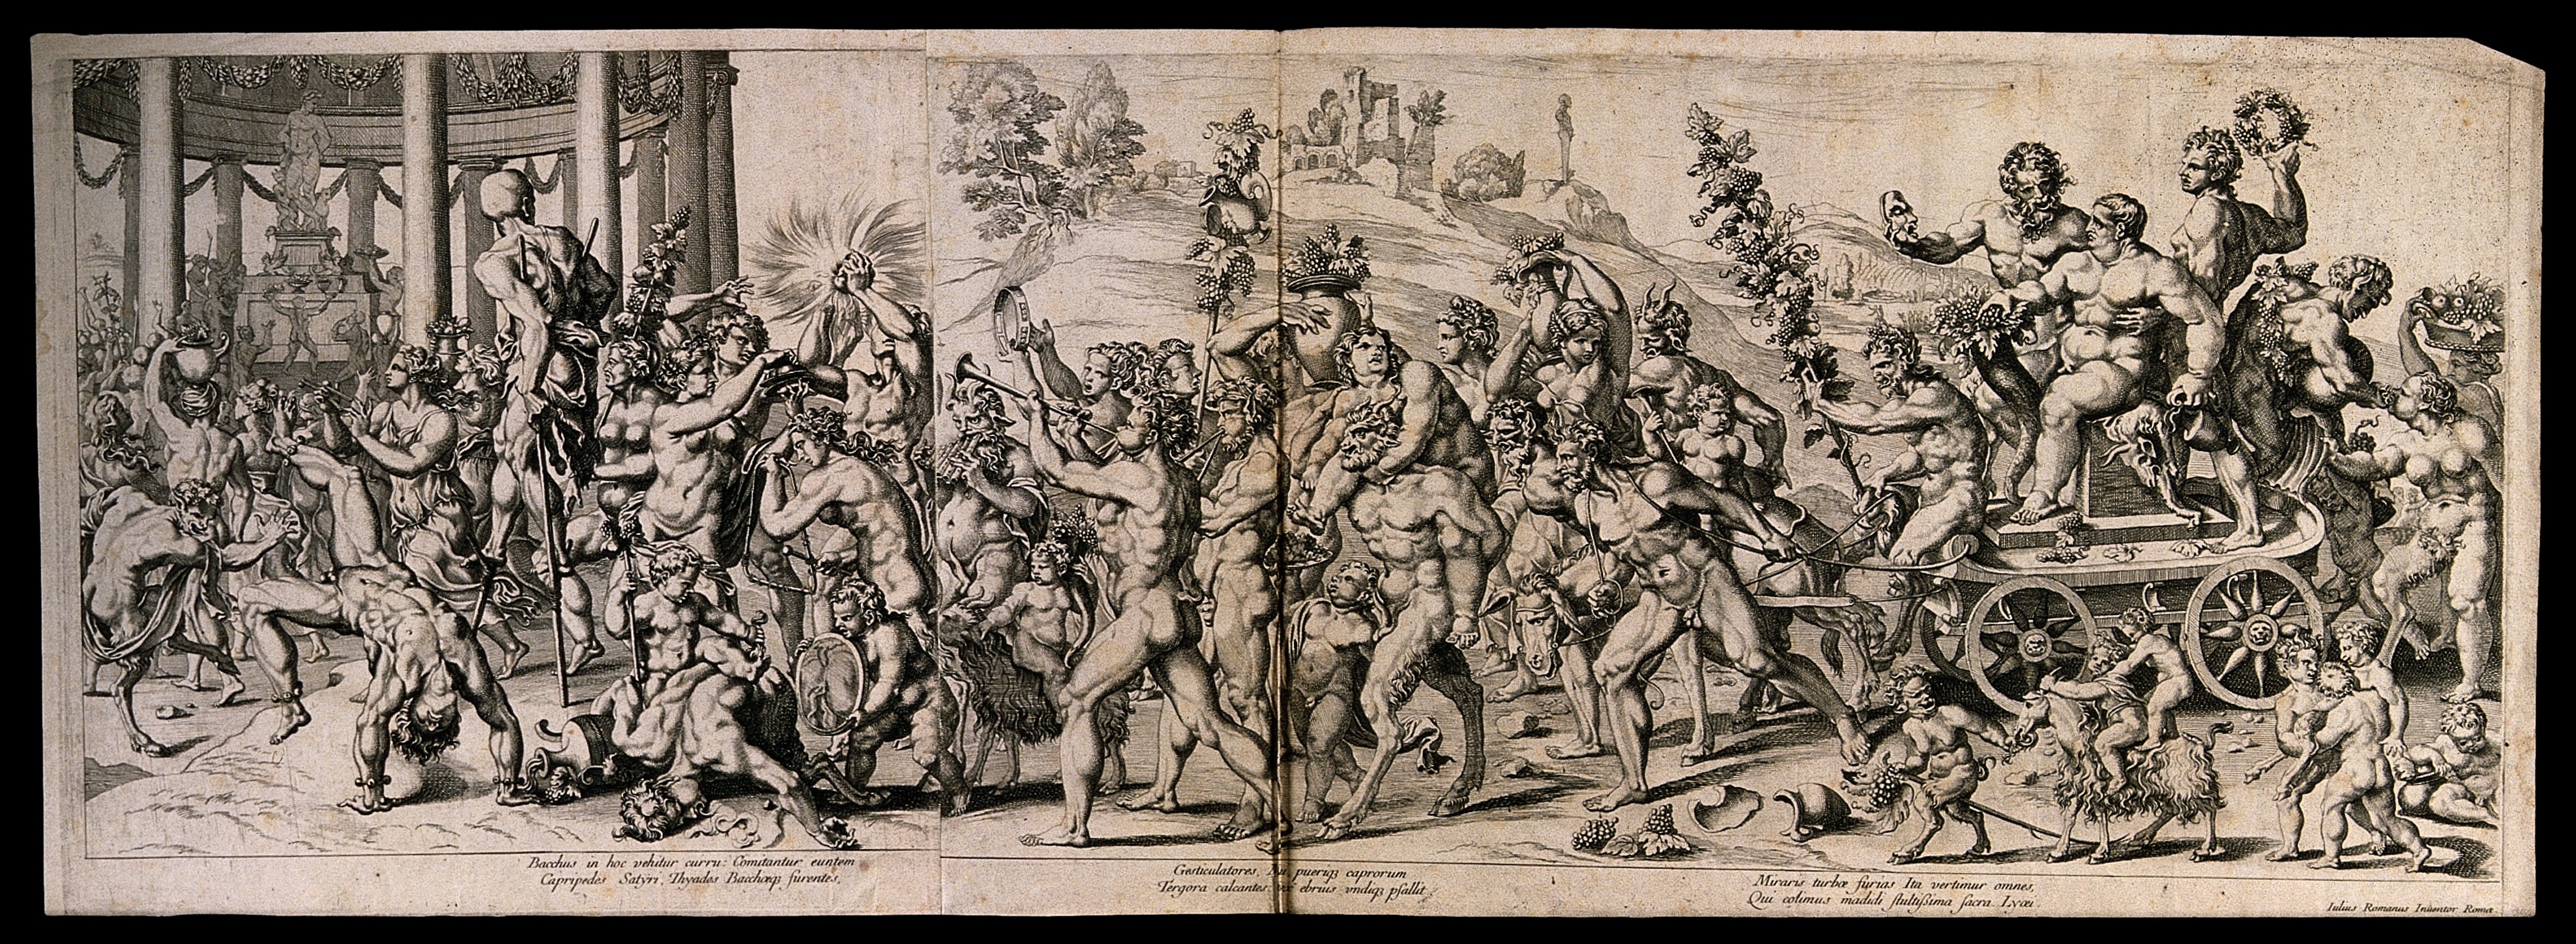 Filebacchus On A Chariot Preceded By A Drunken Procession Of Nud Wellcome V0019441